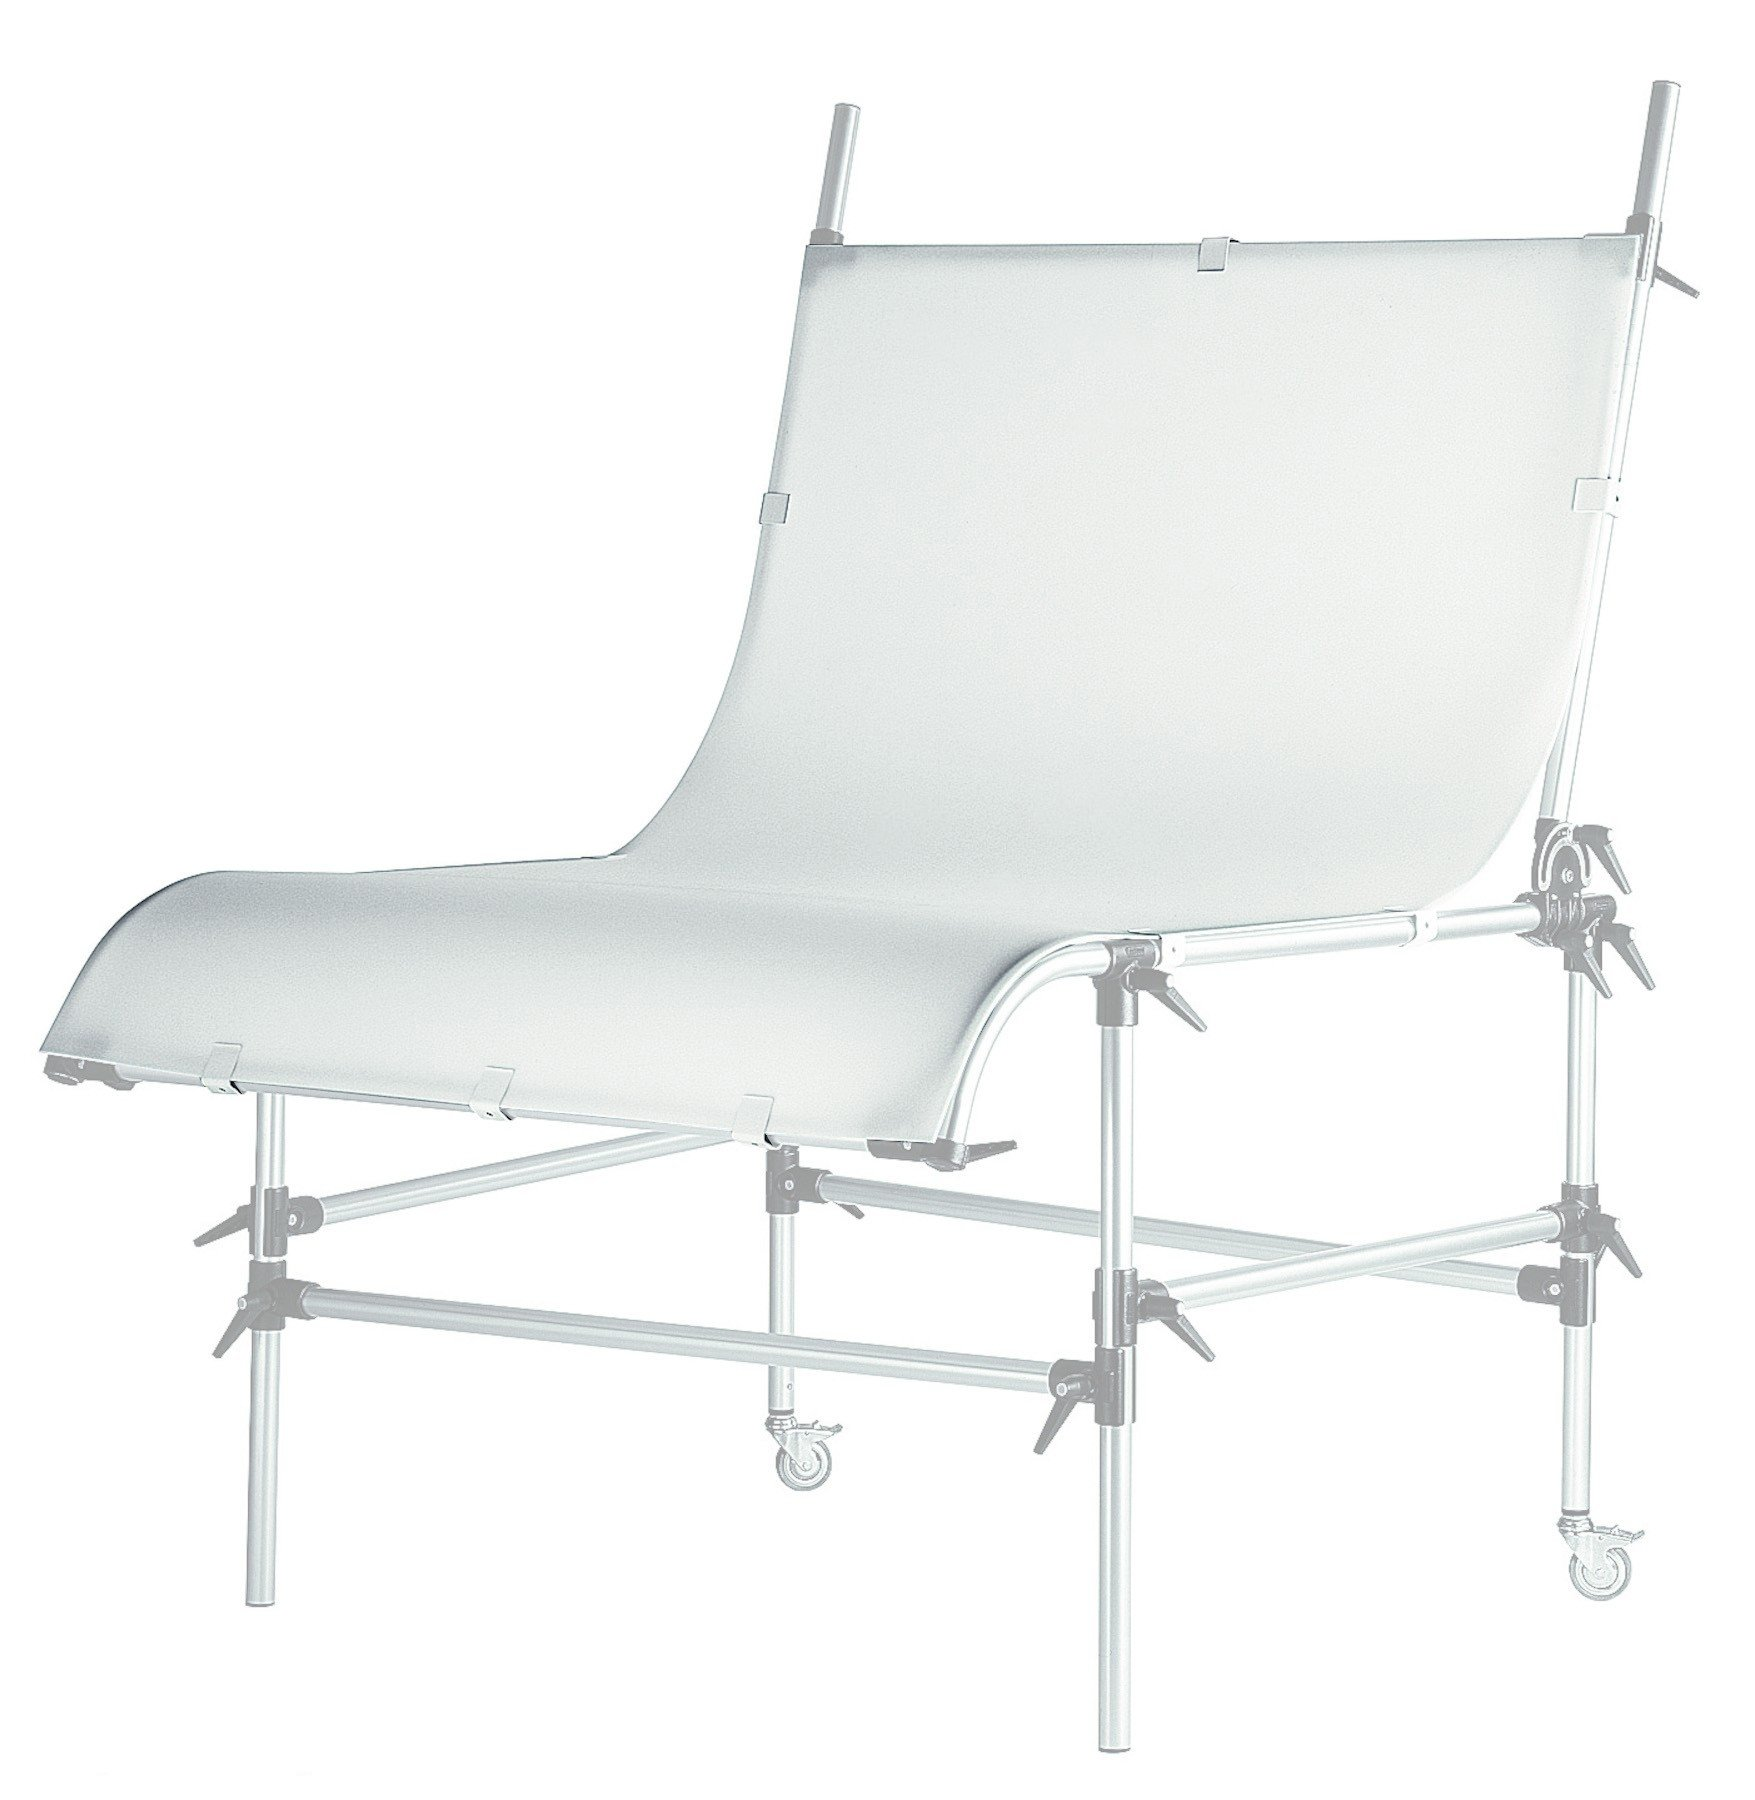 Manfrotto 220PX Plexiglass Cover for Still Life Table Only - Special Order Only (White) by Manfrotto